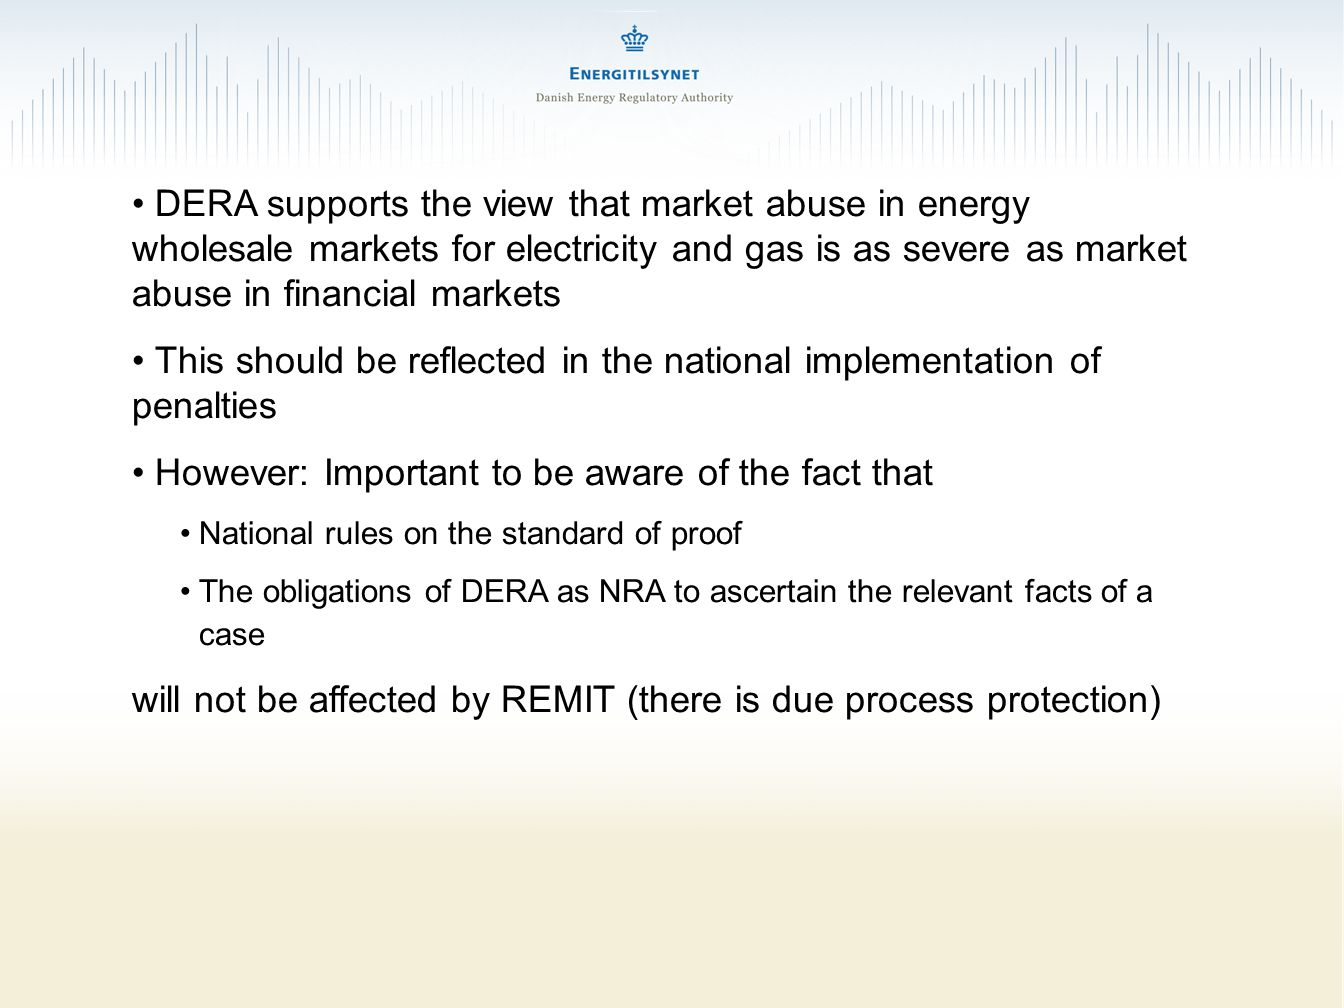 DERA supports the view that market abuse in energy wholesale markets for electricity and gas is as severe as market abuse in financial markets This should be reflected in the national implementation of penalties However: Important to be aware of the fact that National rules on the standard of proof The obligations of DERA as NRA to ascertain the relevant facts of a case will not be affected by REMIT (there is due process protection)